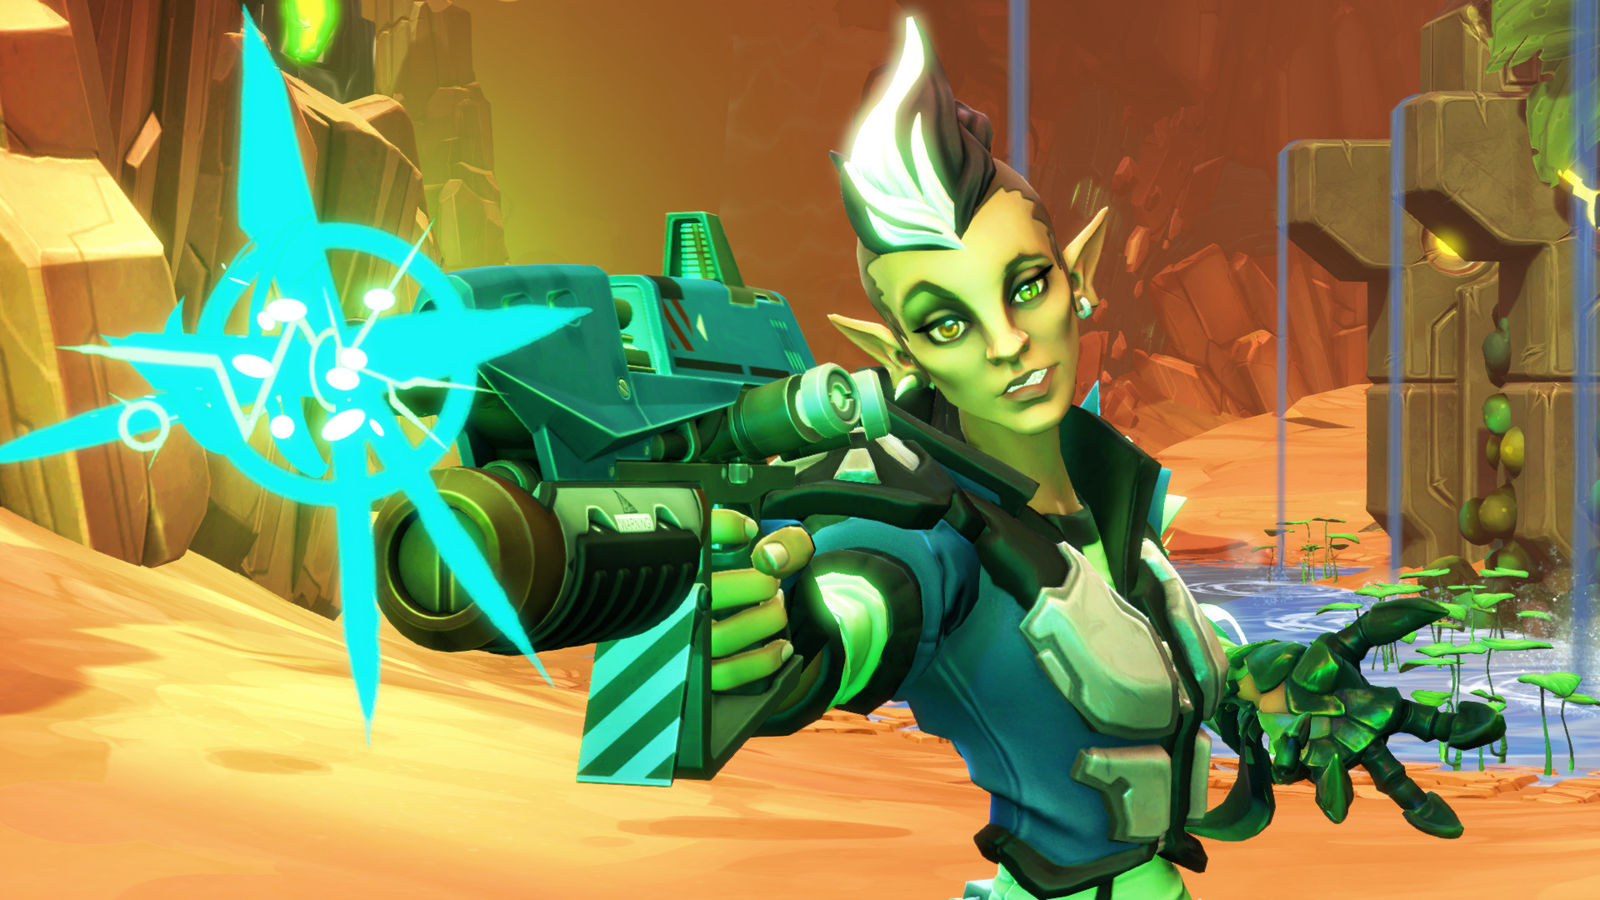 Battleborn (Steam Key) + ROW